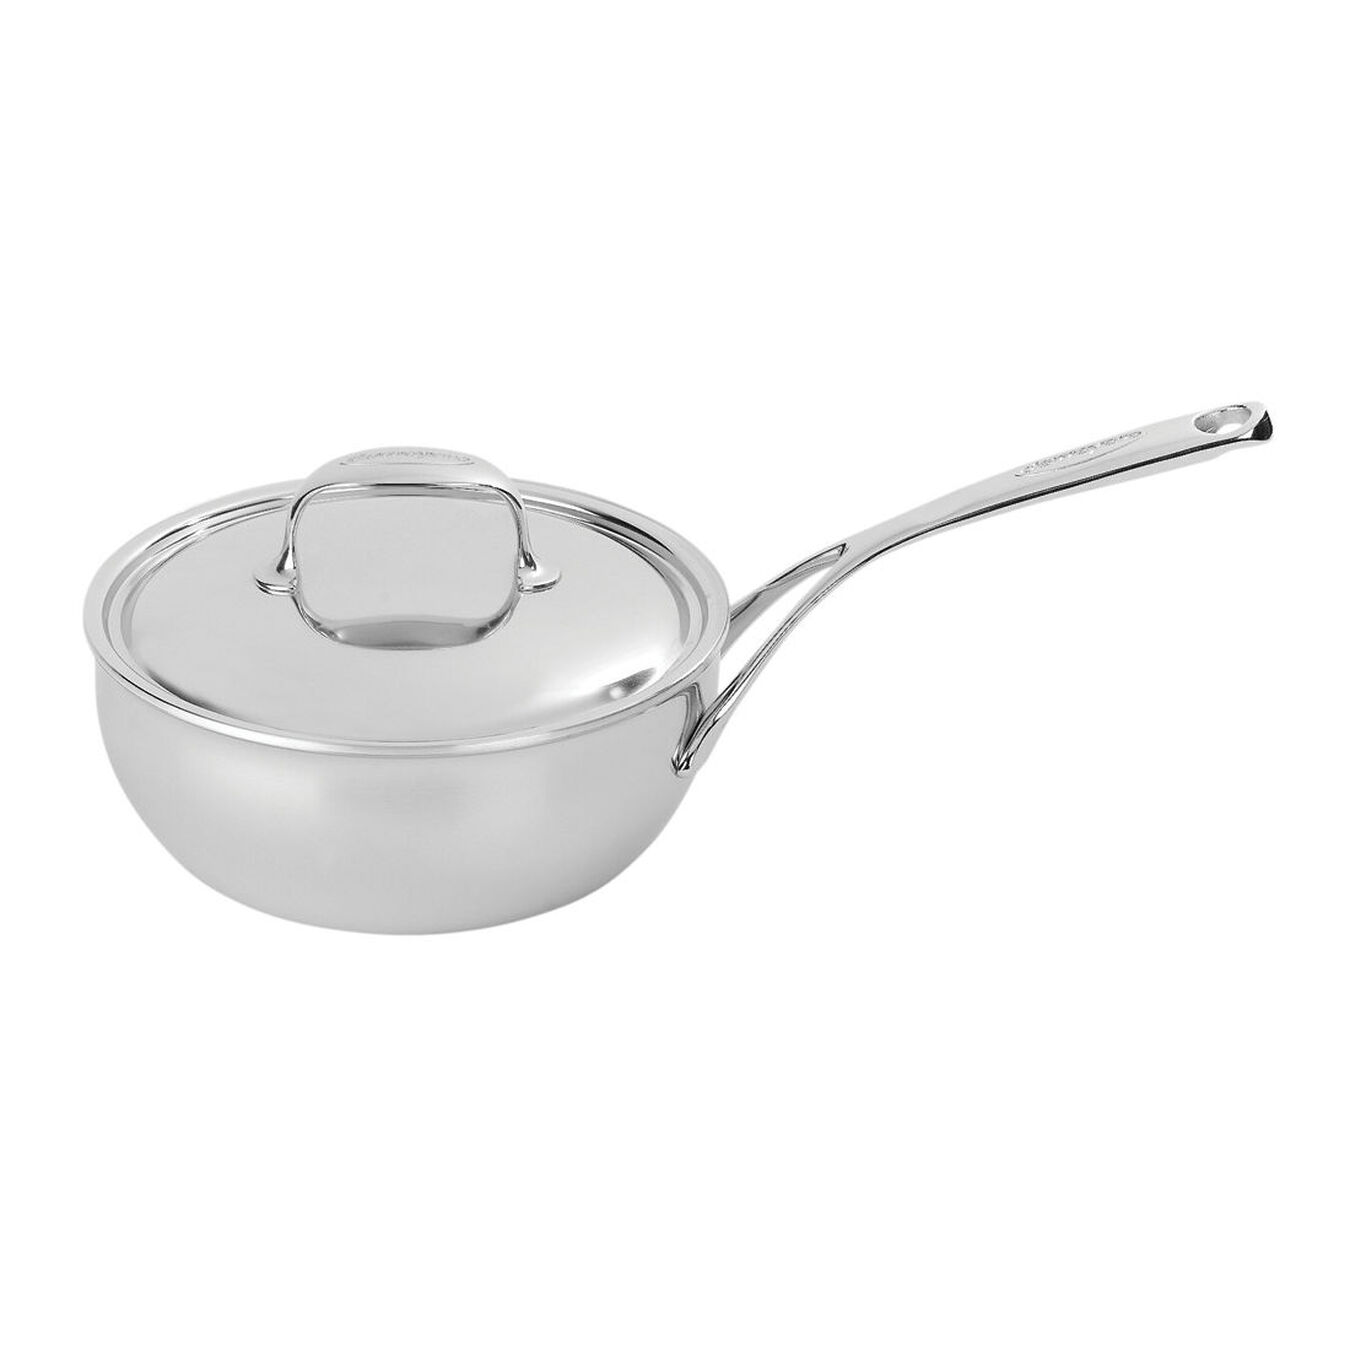 2.75 qt Sauteuse conical, 18/10 Stainless Steel ,,large 1